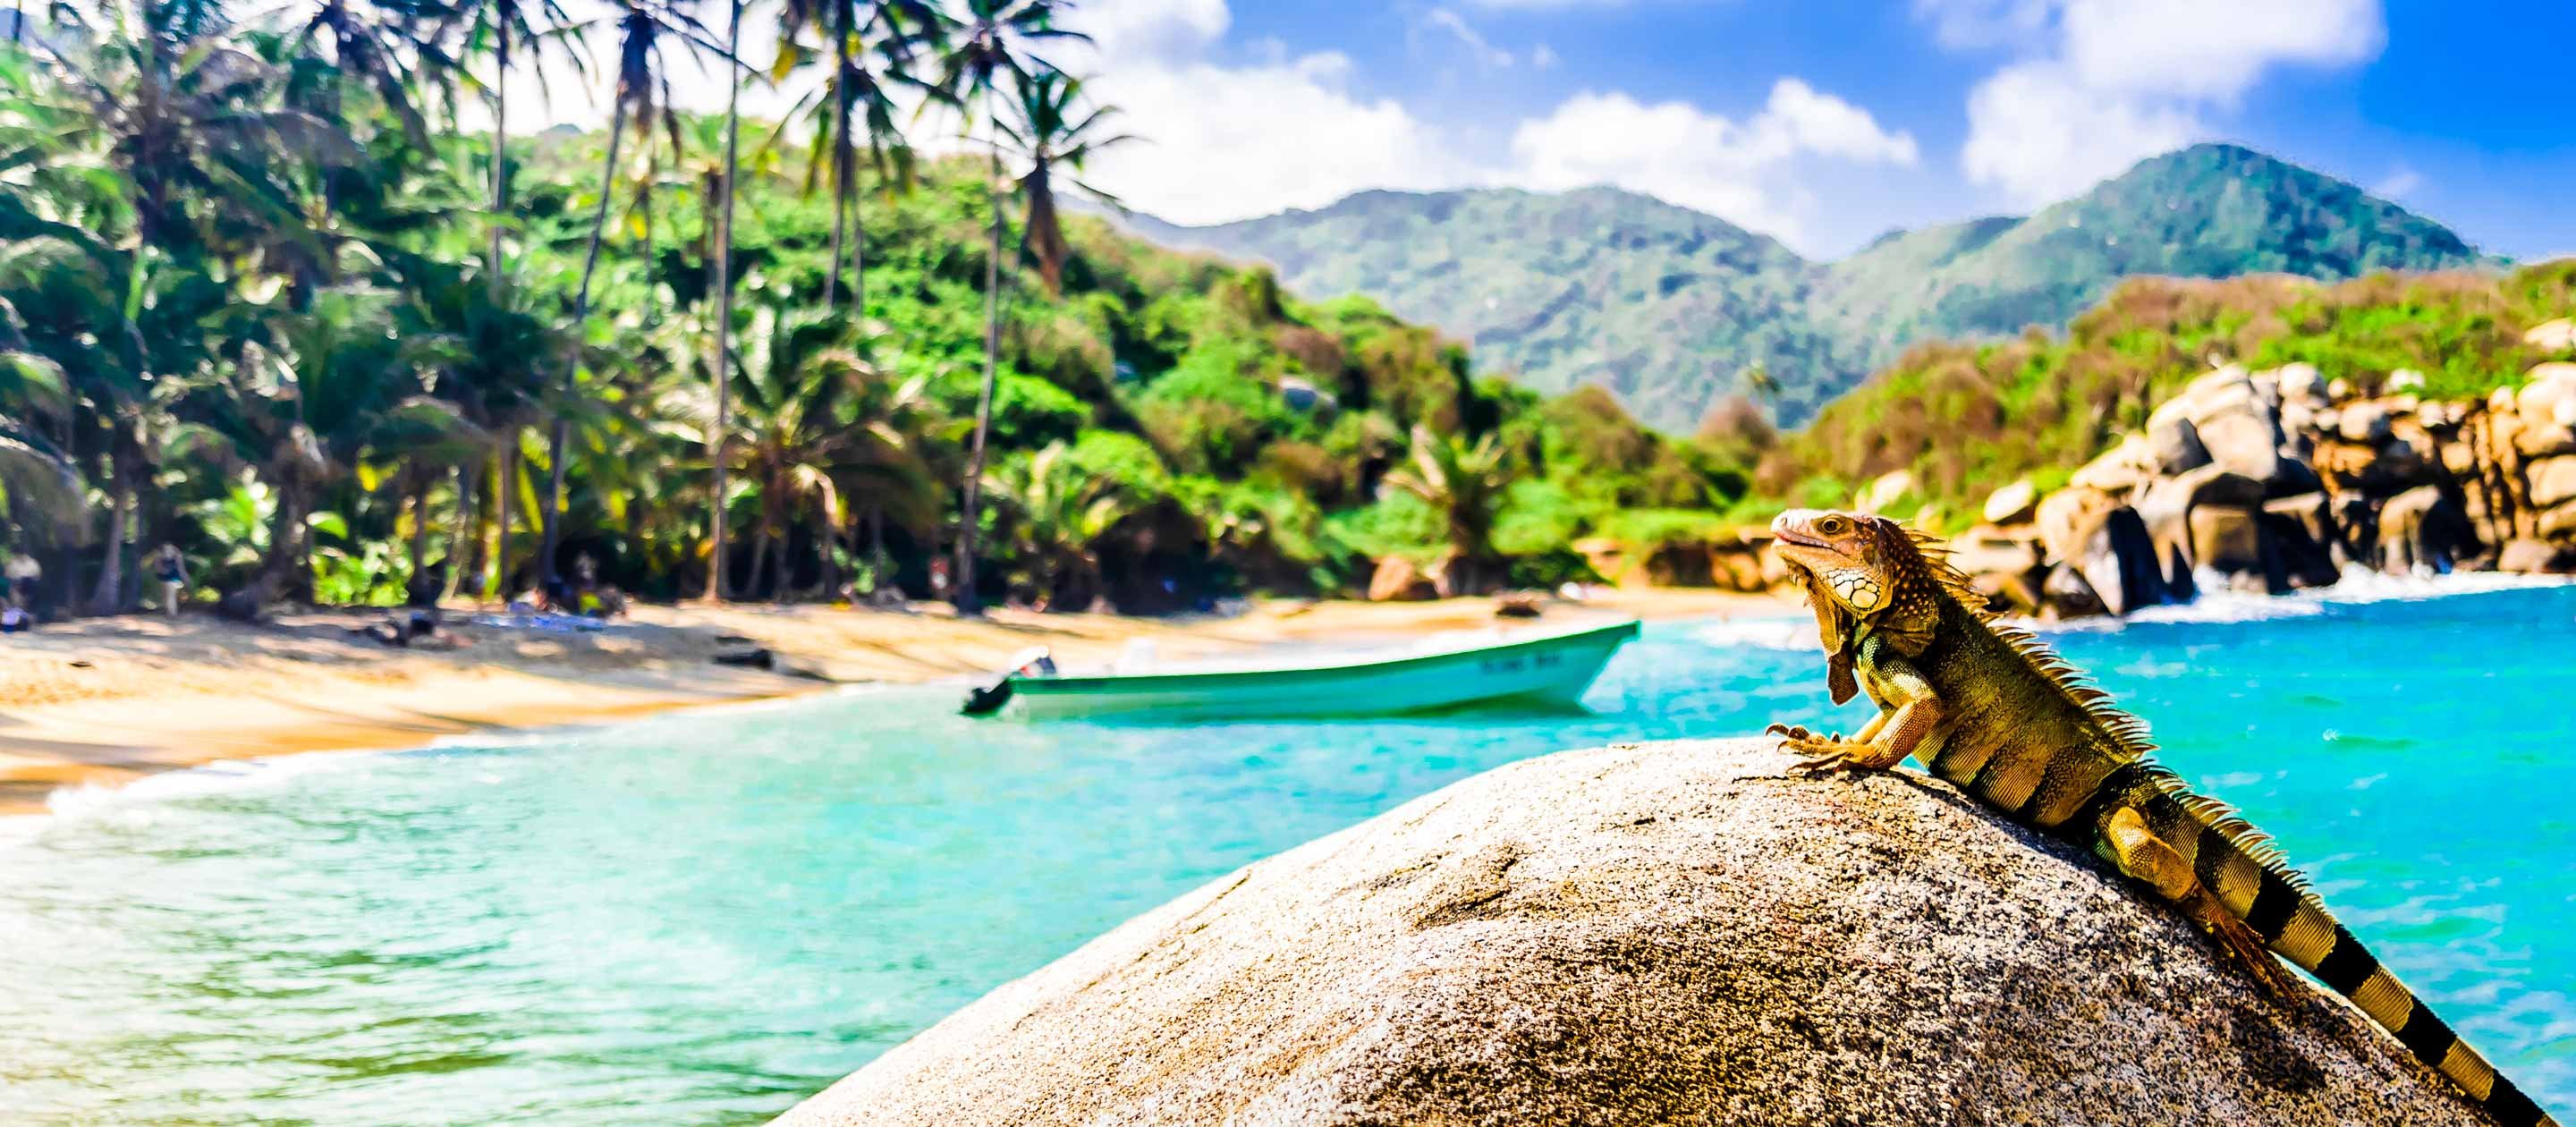 Lizard on beach rock in Tayrona National Park, Colombia